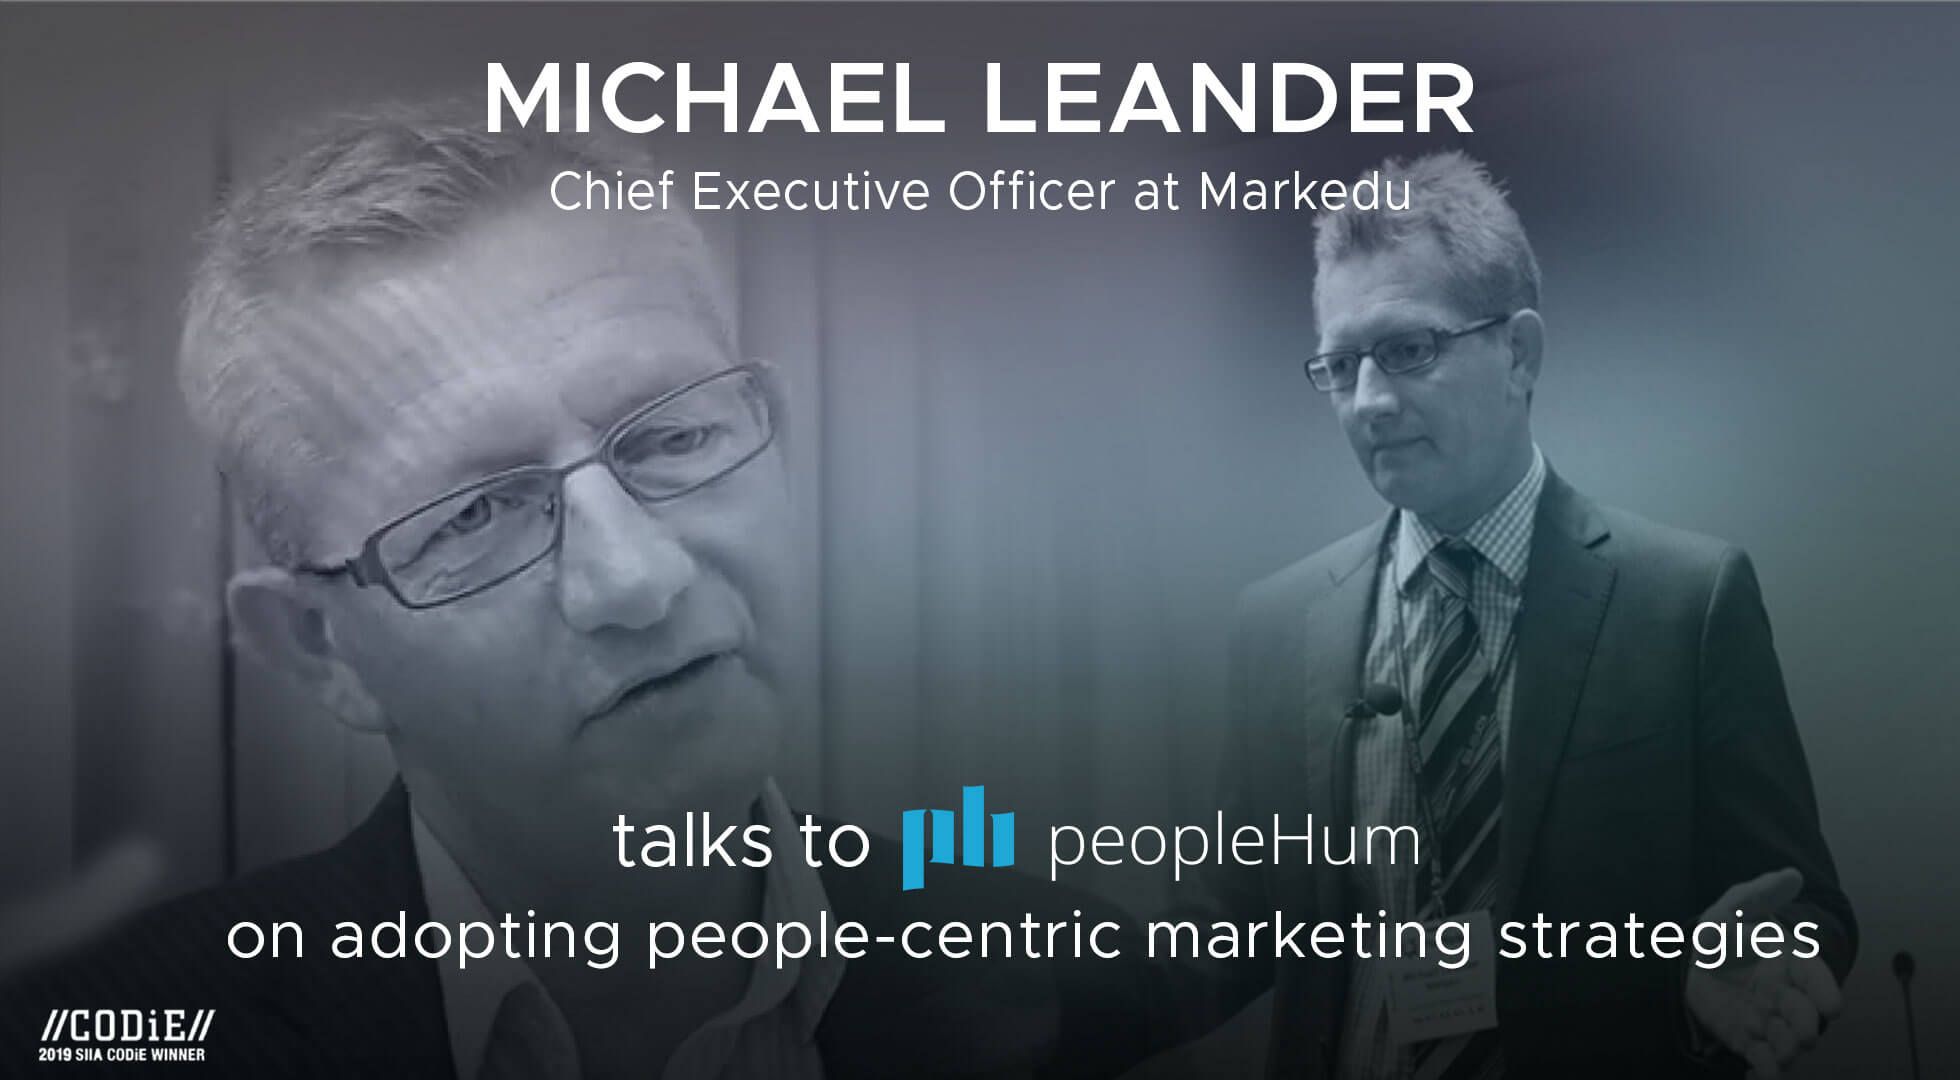 Adopting people-centric marketing strategies - Michael Leander [Interview]